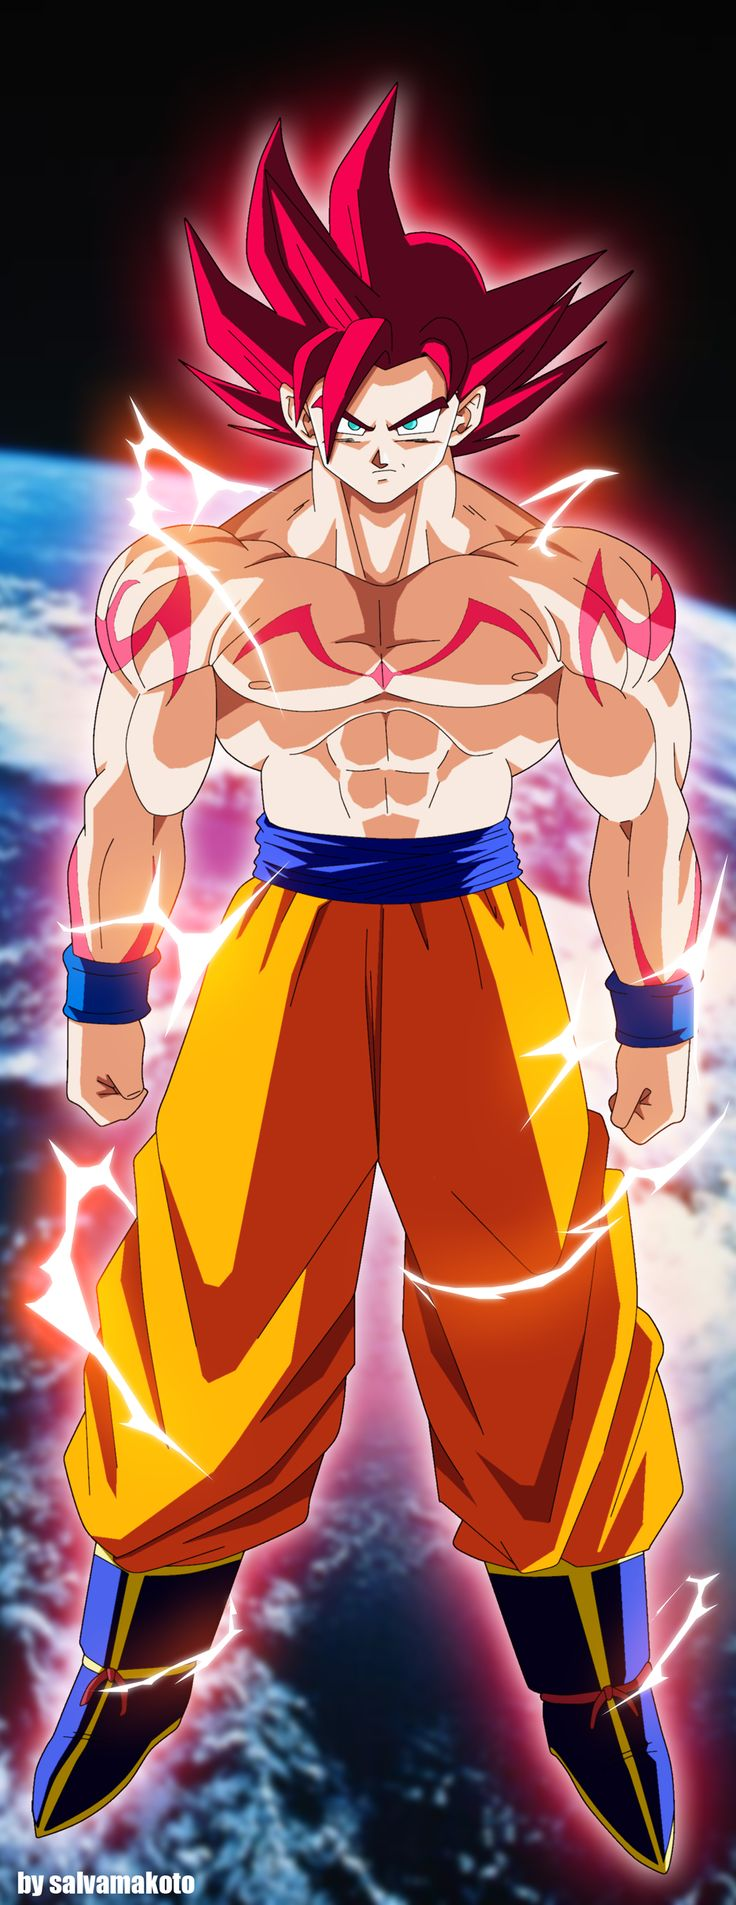 THE SUPER SAIYAN GOD !! by salvamakoto.deviantart.com on @deviantART